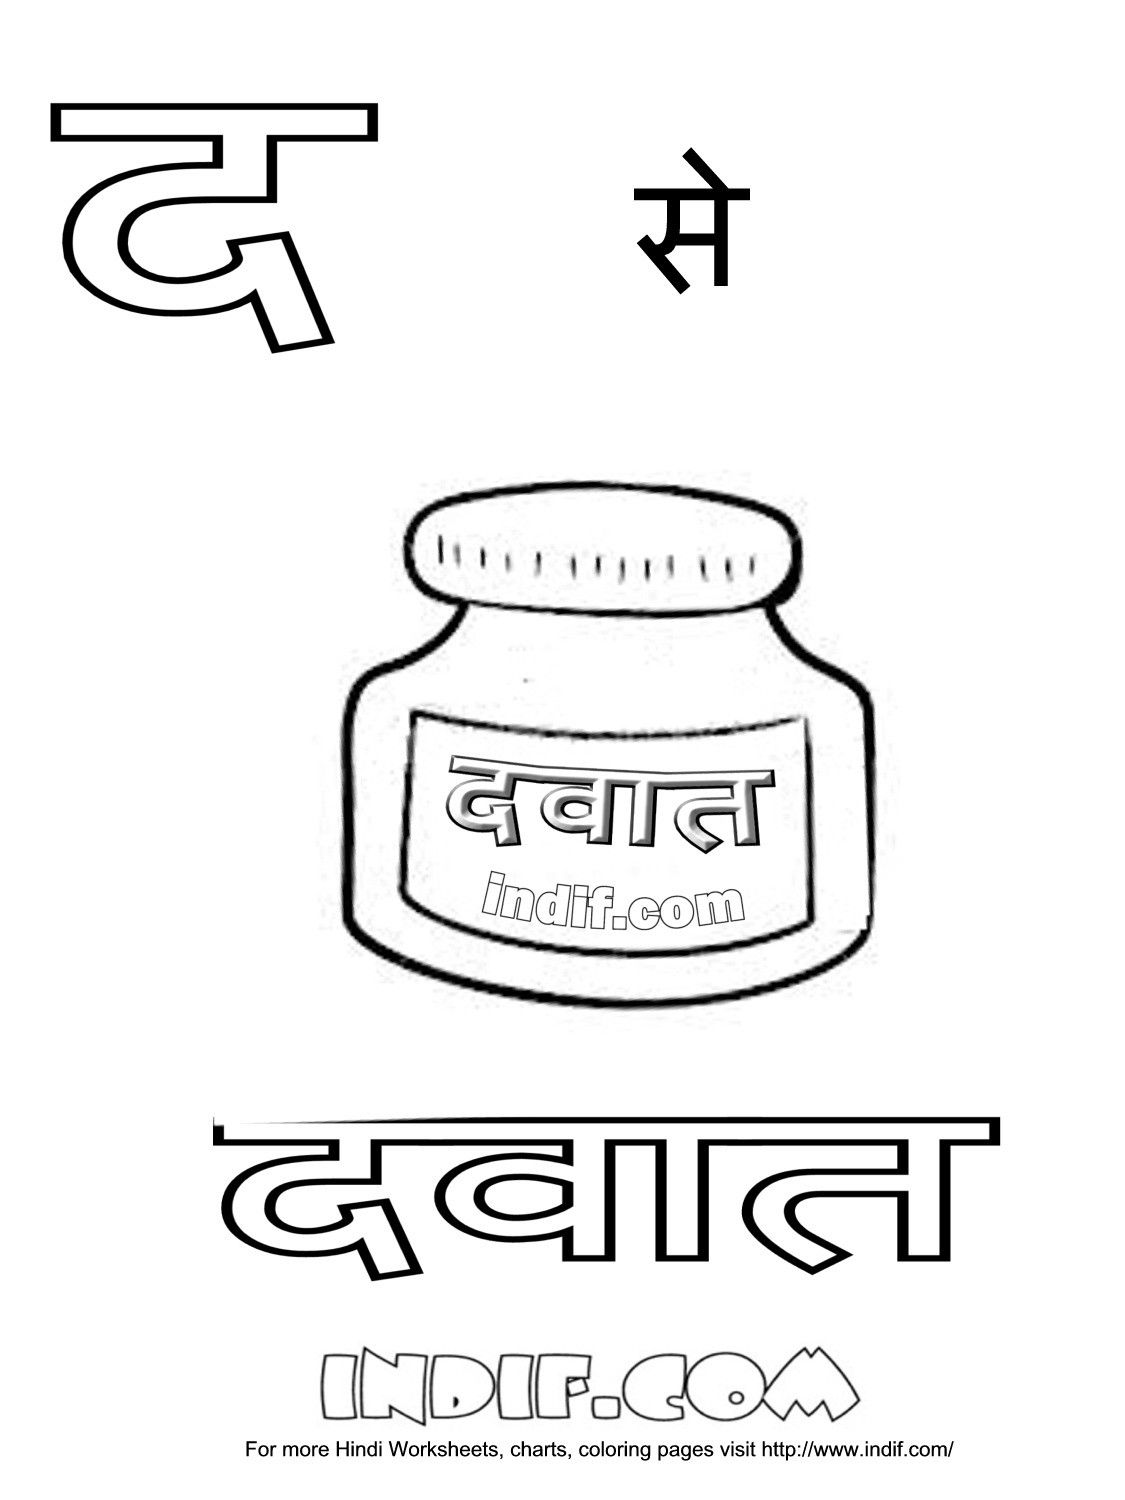 Hindi Varnamala Letters With Words In 2021 Two Letter Words Words Lettering [ 1500 x 1125 Pixel ]